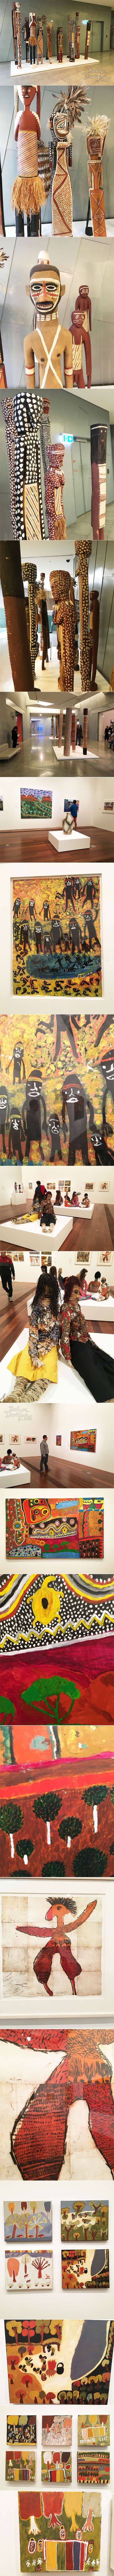 From the Balzer Designs Blog: A Visit to The National Gallery of Australia